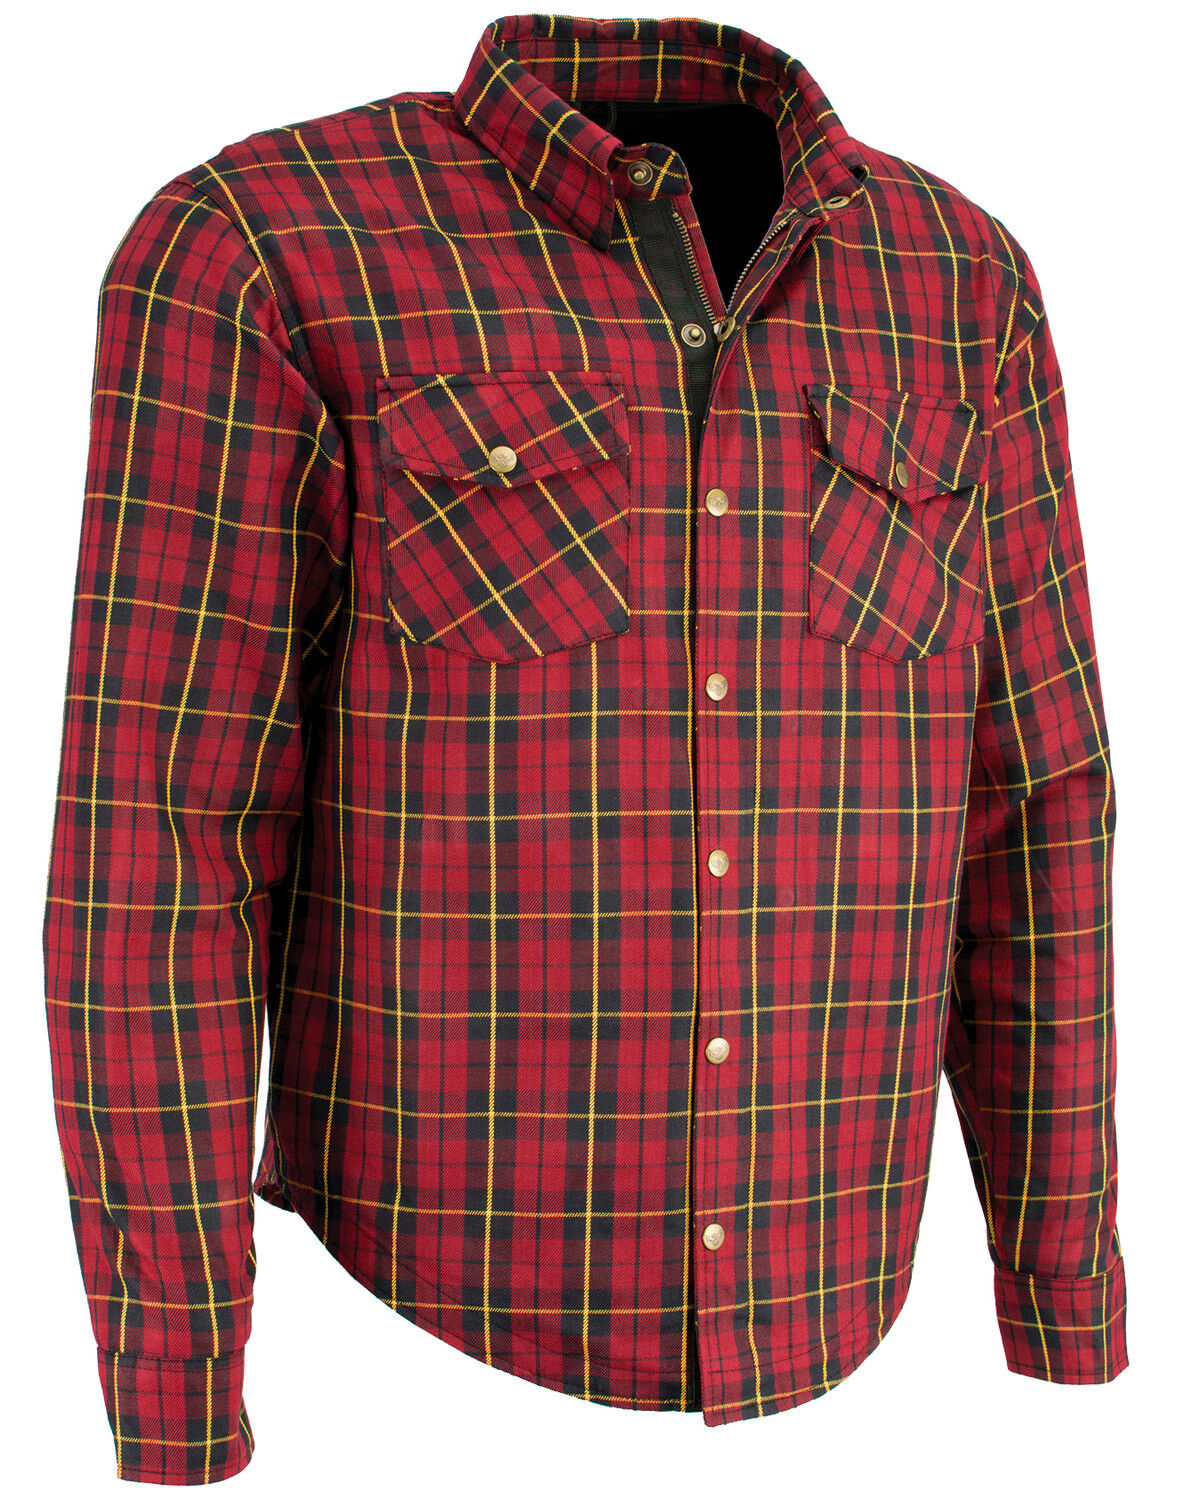 Milwaukee Leather Men/'s Performance Aramid Reinforced Checkered Flannel Long